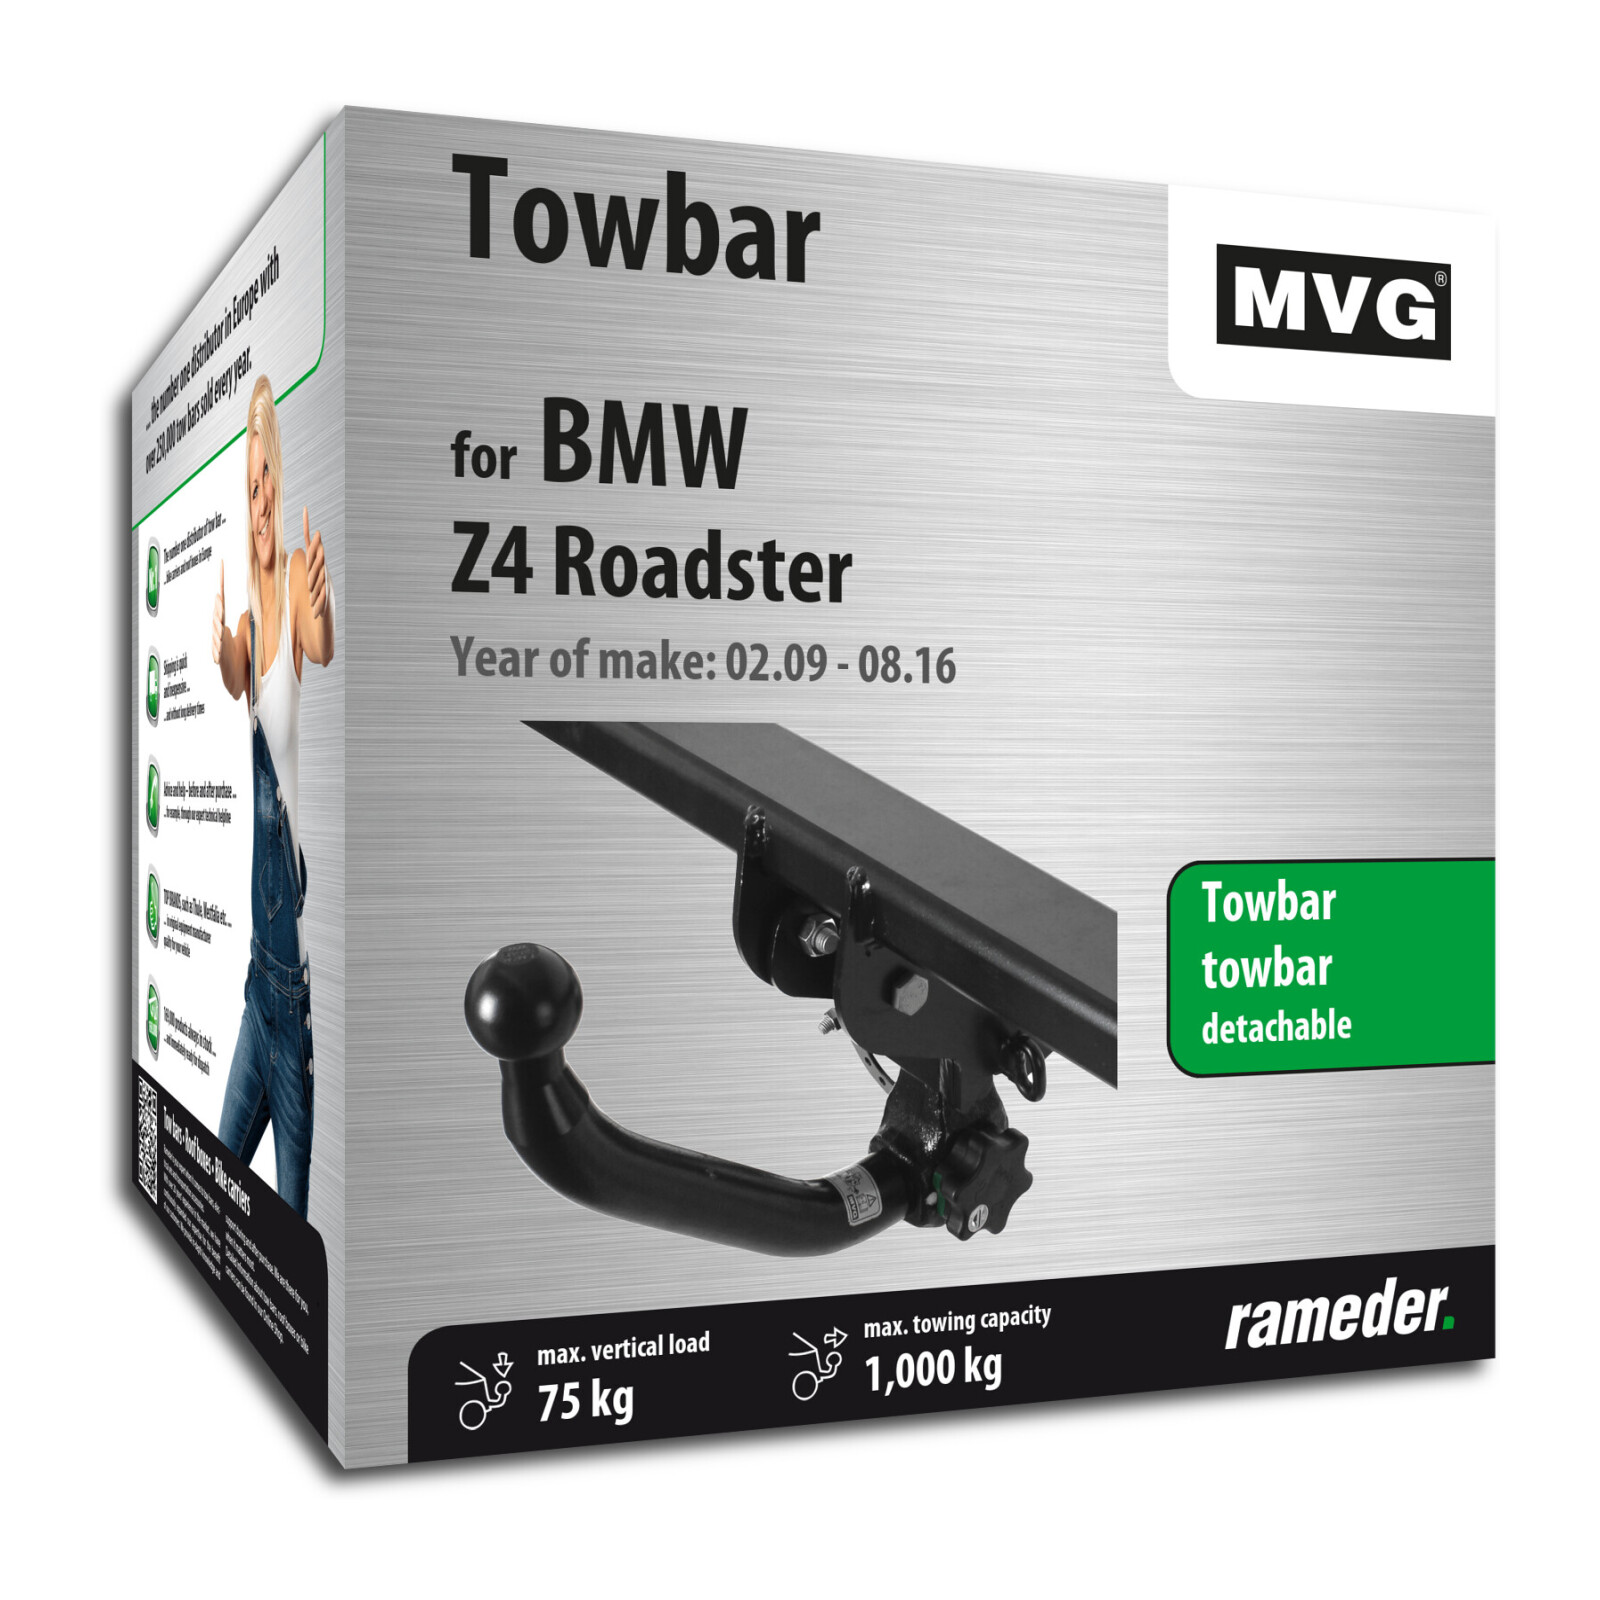 Mvg Towbar Detachable Bmw Z4 Roadster Year Of Make 05 09 Rameder Towbar